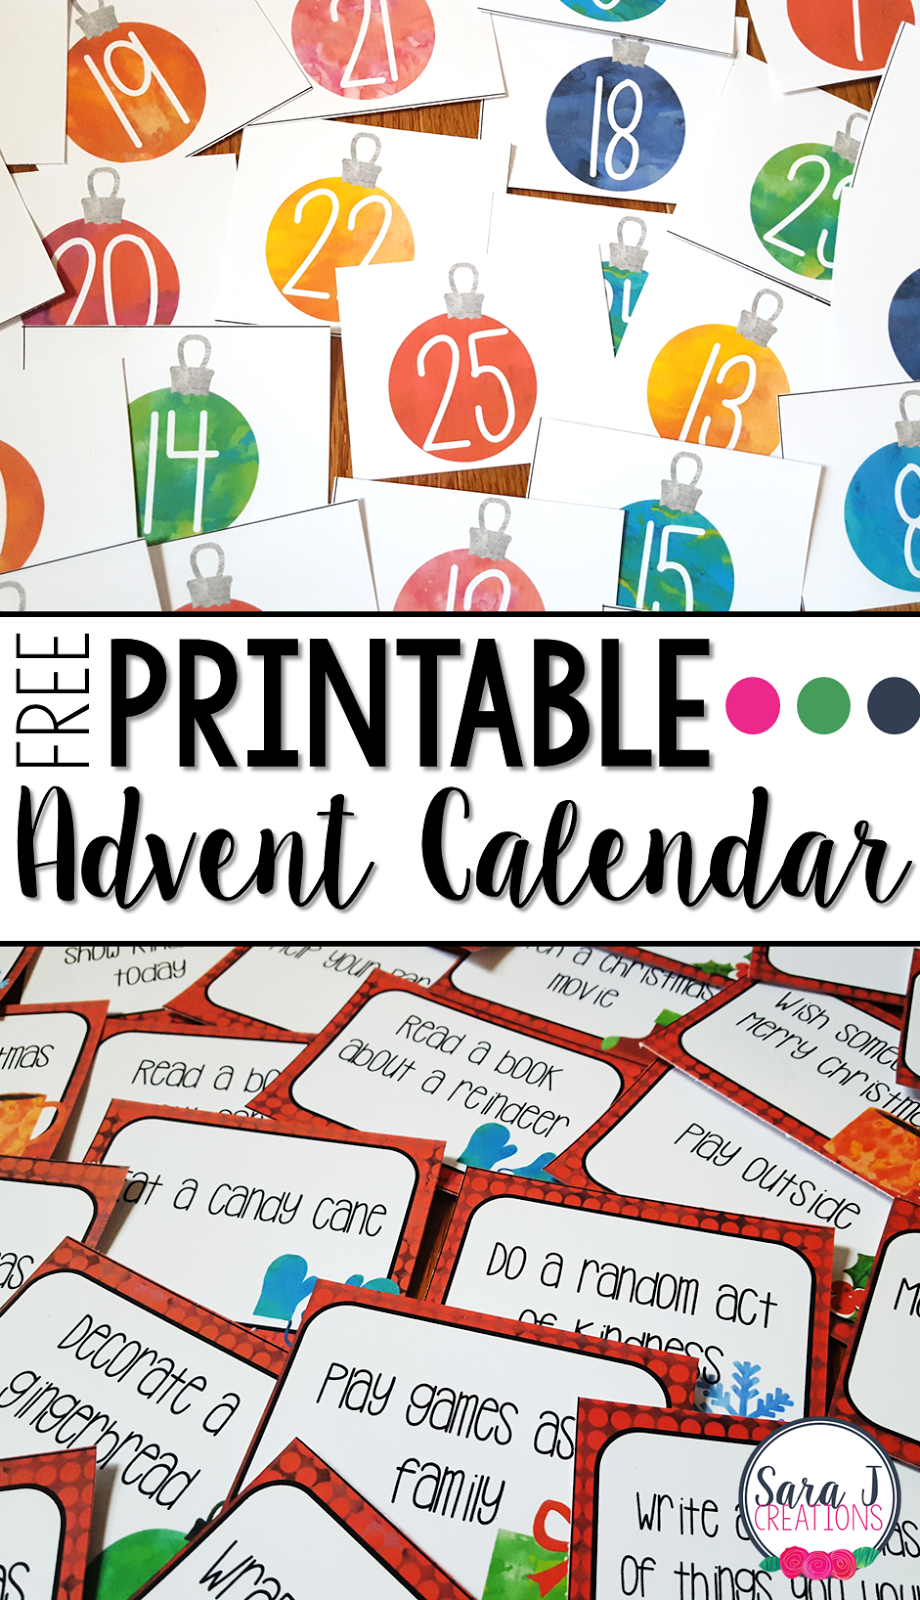 Free Diy Printable Advent Calendar For Counting Down To Christmas As A Family Printable Advent Calendar Advent Calendar Activities Advent Calendars For Kids [ 1600 x 920 Pixel ]